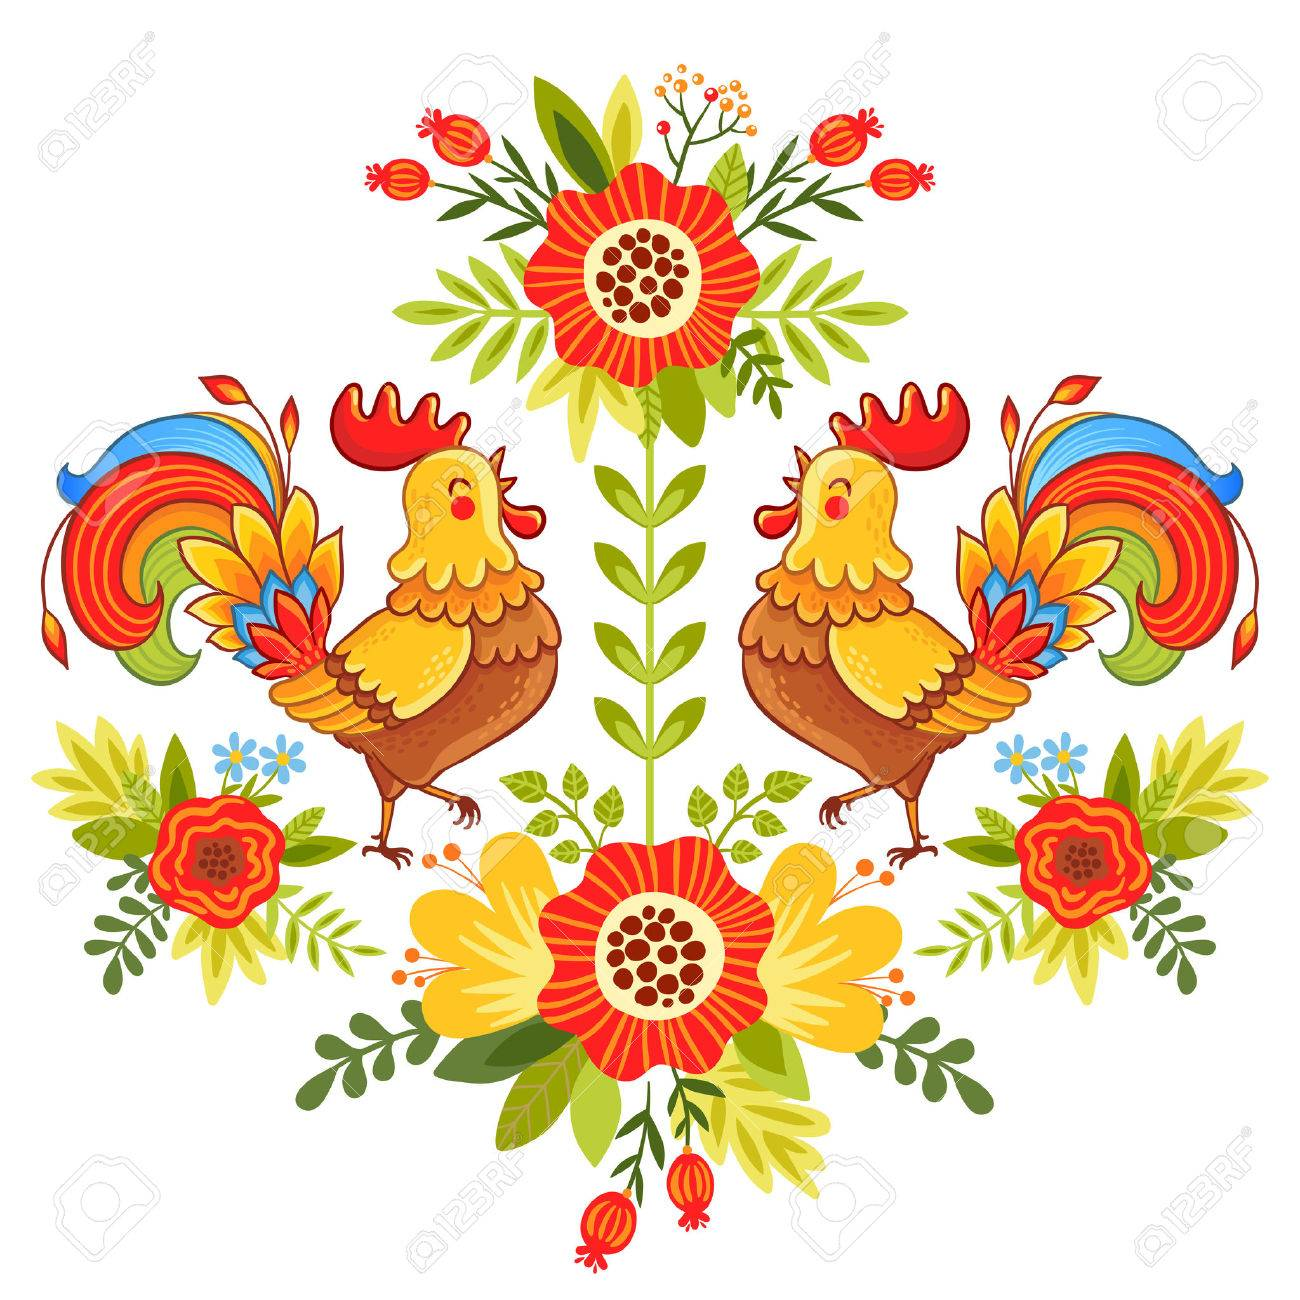 Vector illustration of bright and colorful roosters flower on a white background. - 53803535